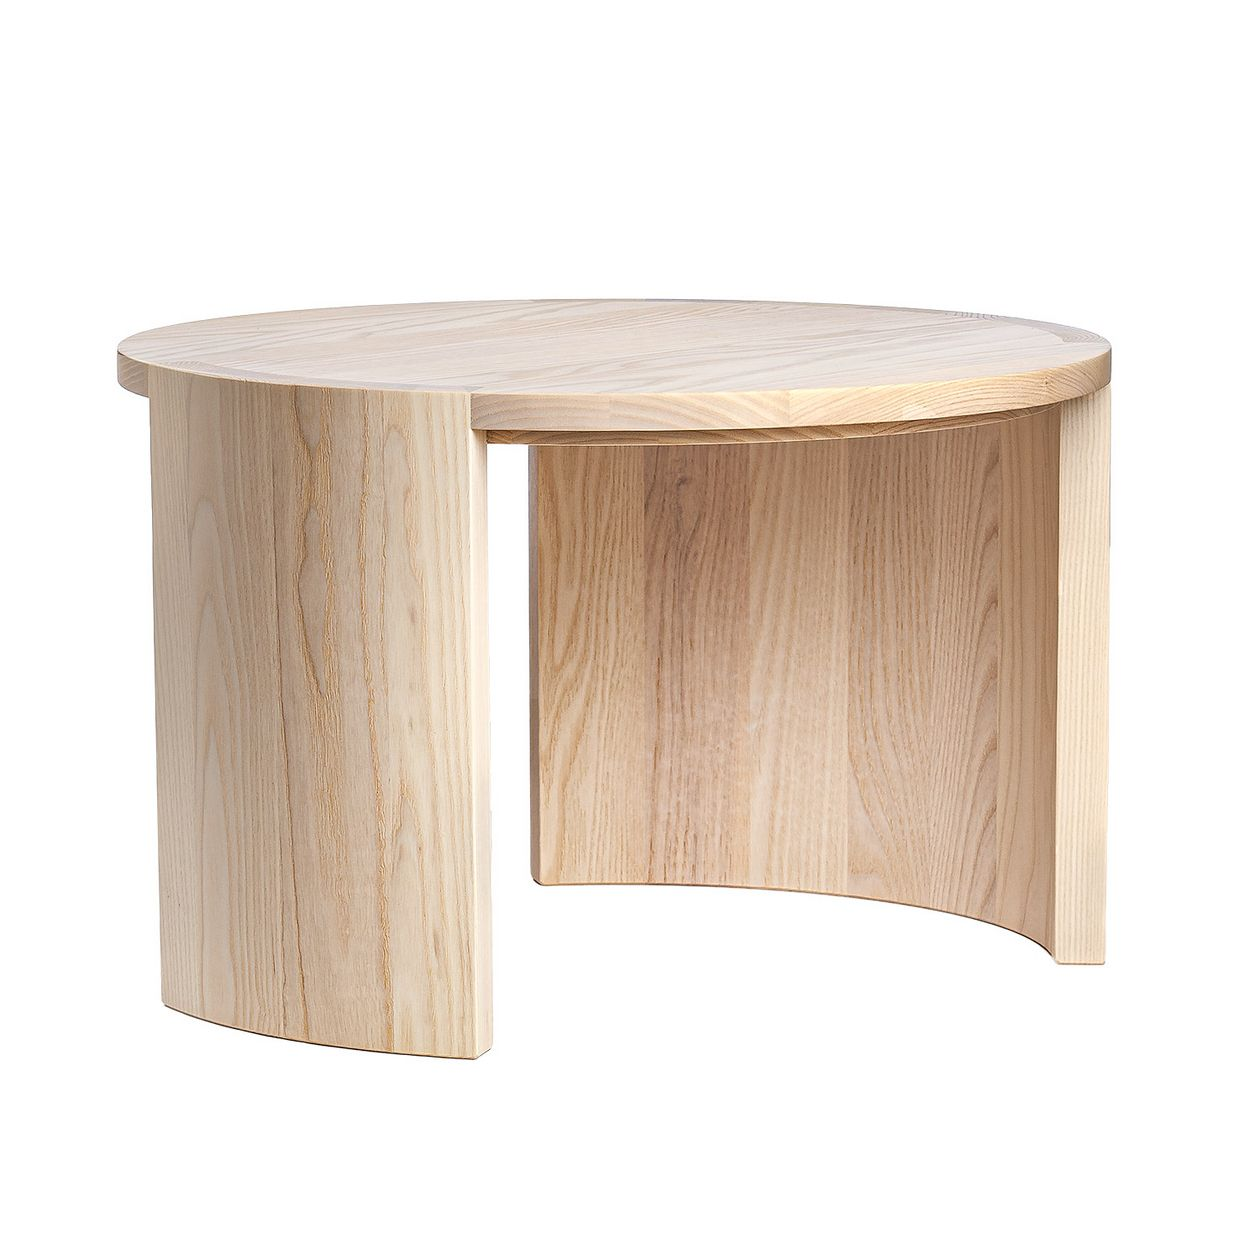 Made by Choice Airisto coffee table